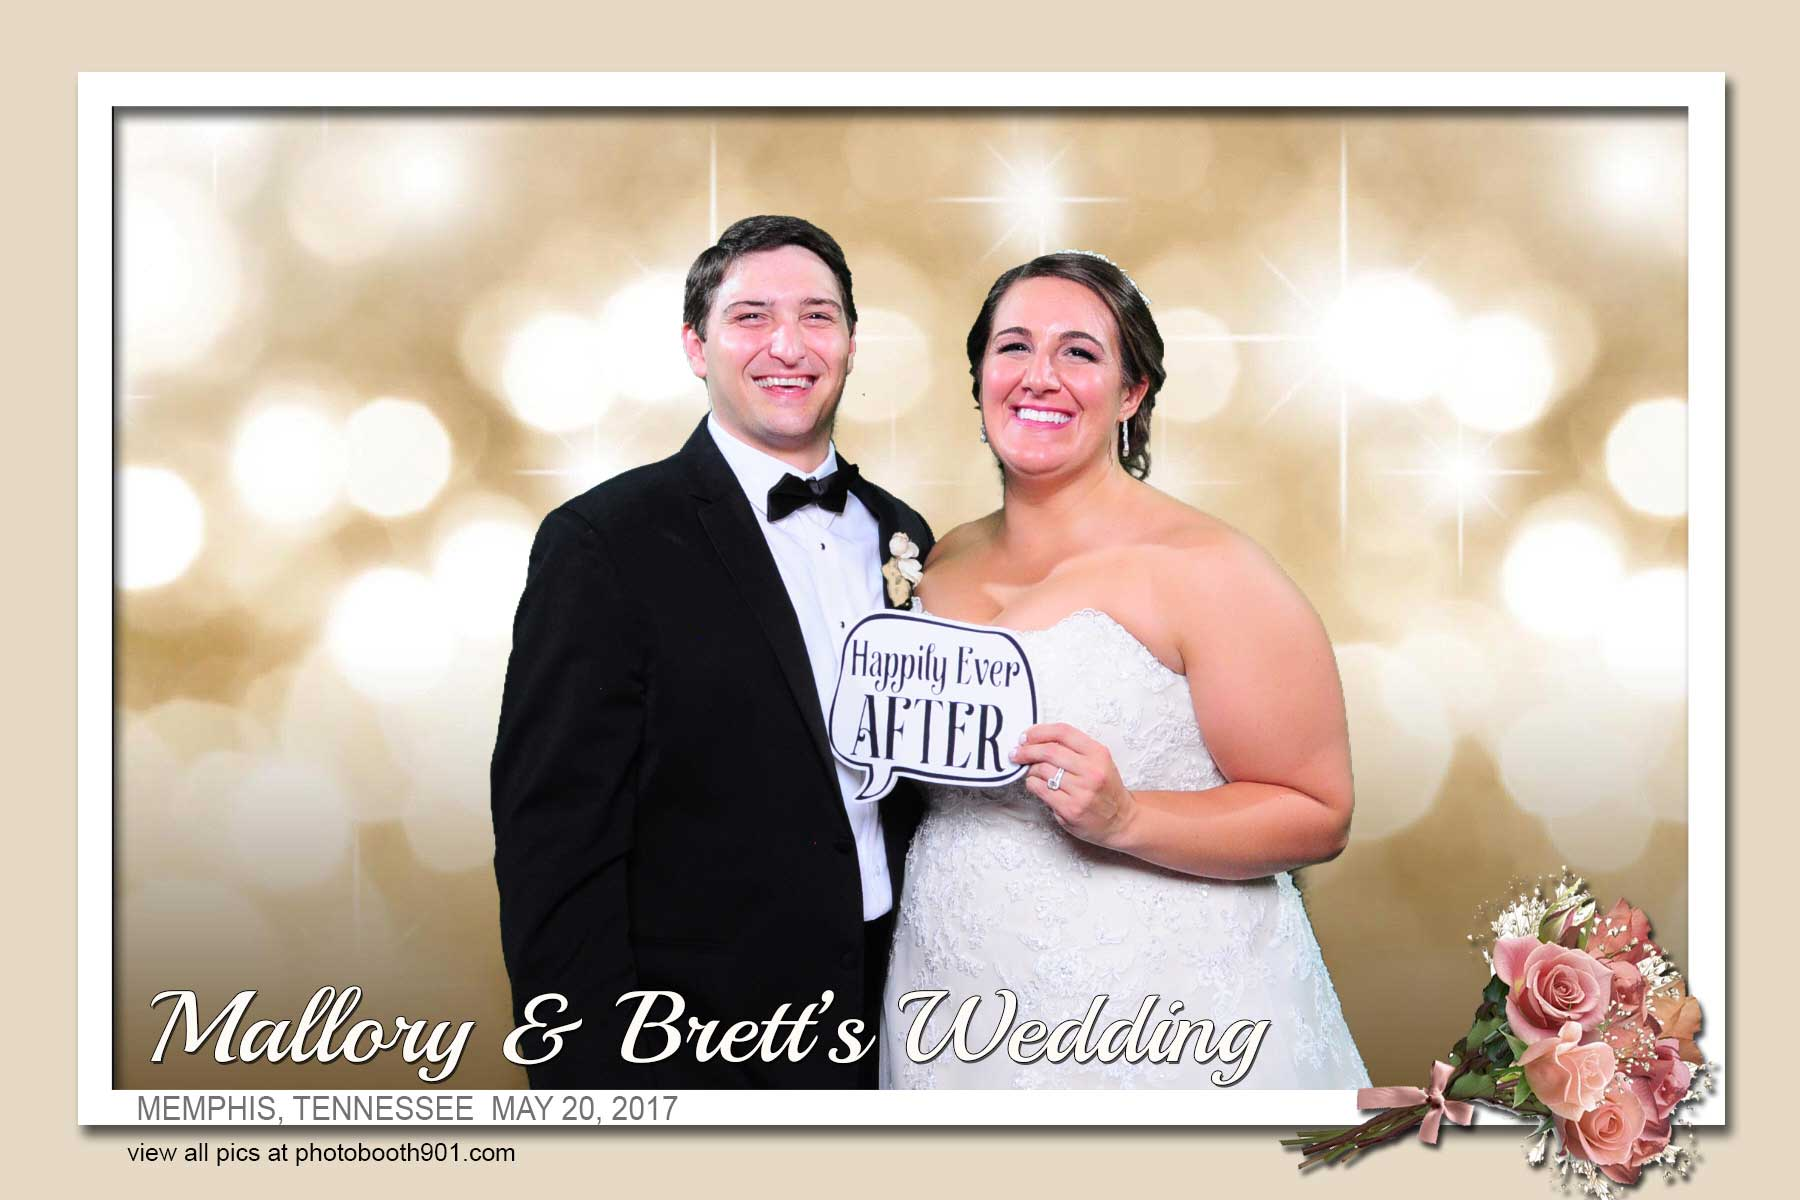 Mallory and Brett's Wedding Photo Booth Memphis